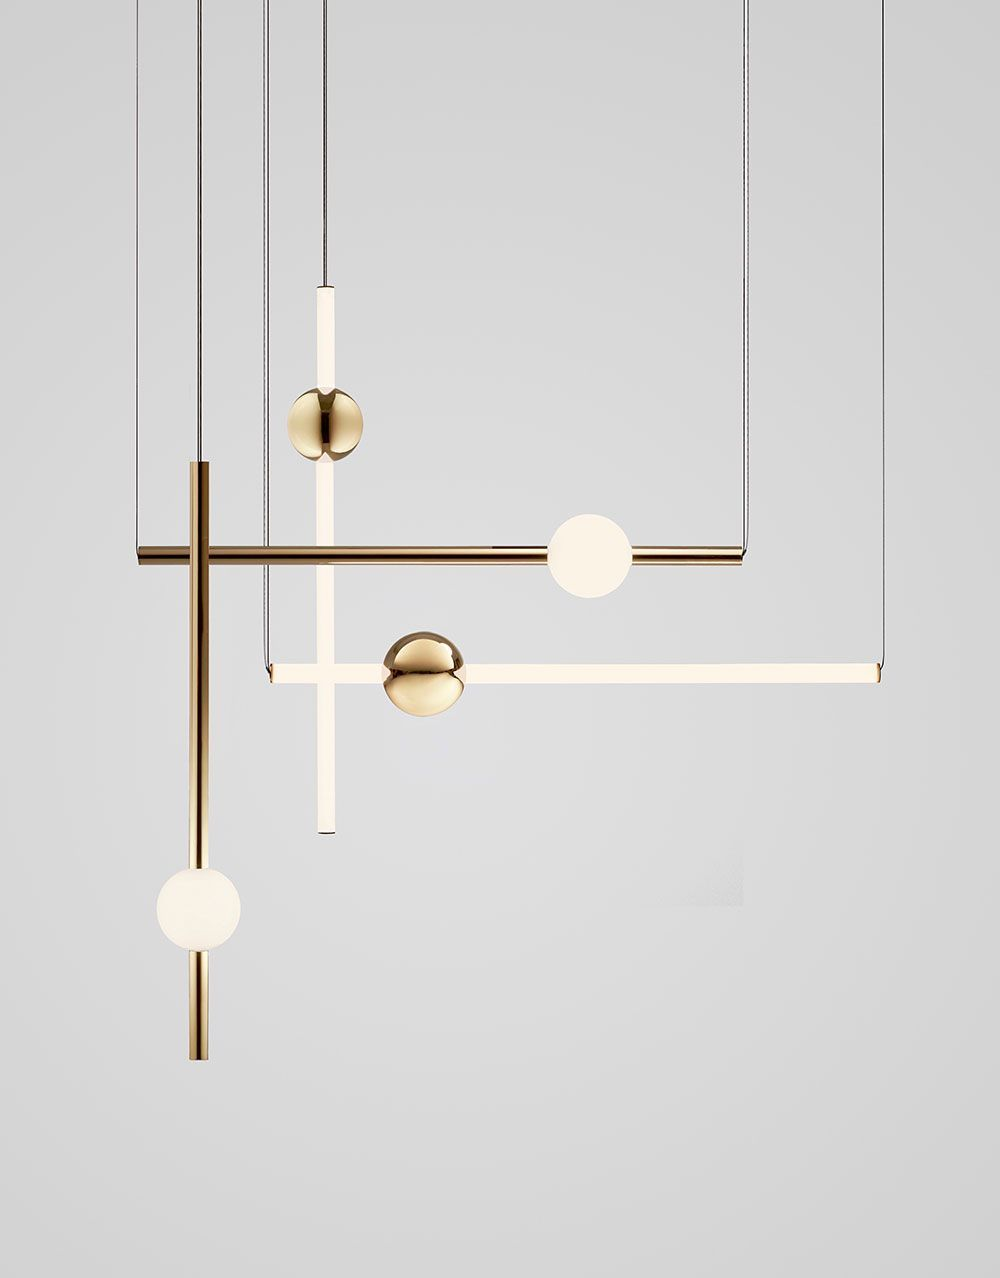 Möbel Modern Design Lee Broom Launches Celestial Lighting At Salone Del Mobile